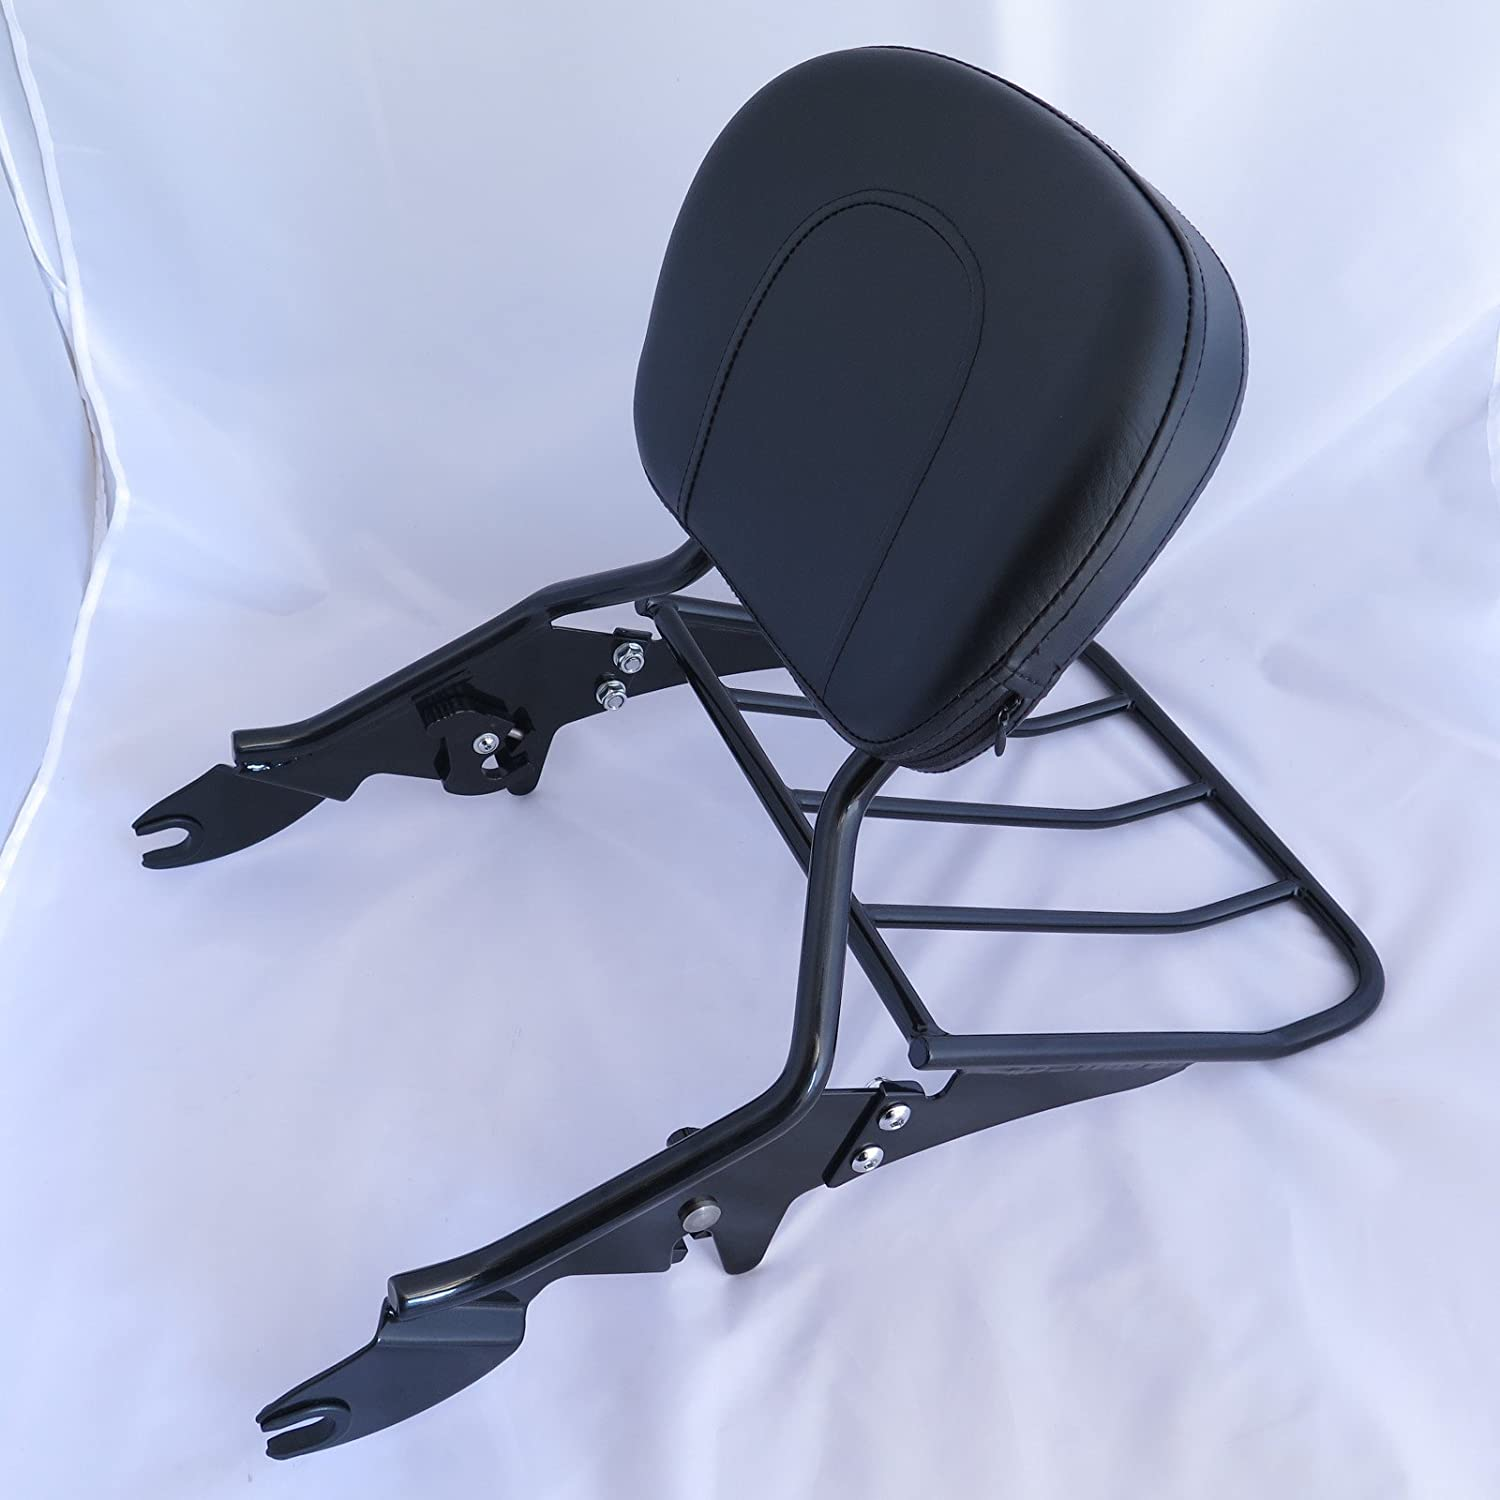 XKMT-Black Detachable Backrest Sissy Bar with Luggage Rack Compatible With 1997-2008 Harley Touring Electra Glide Road Glide Road King Street Glide B01LMV8FX4